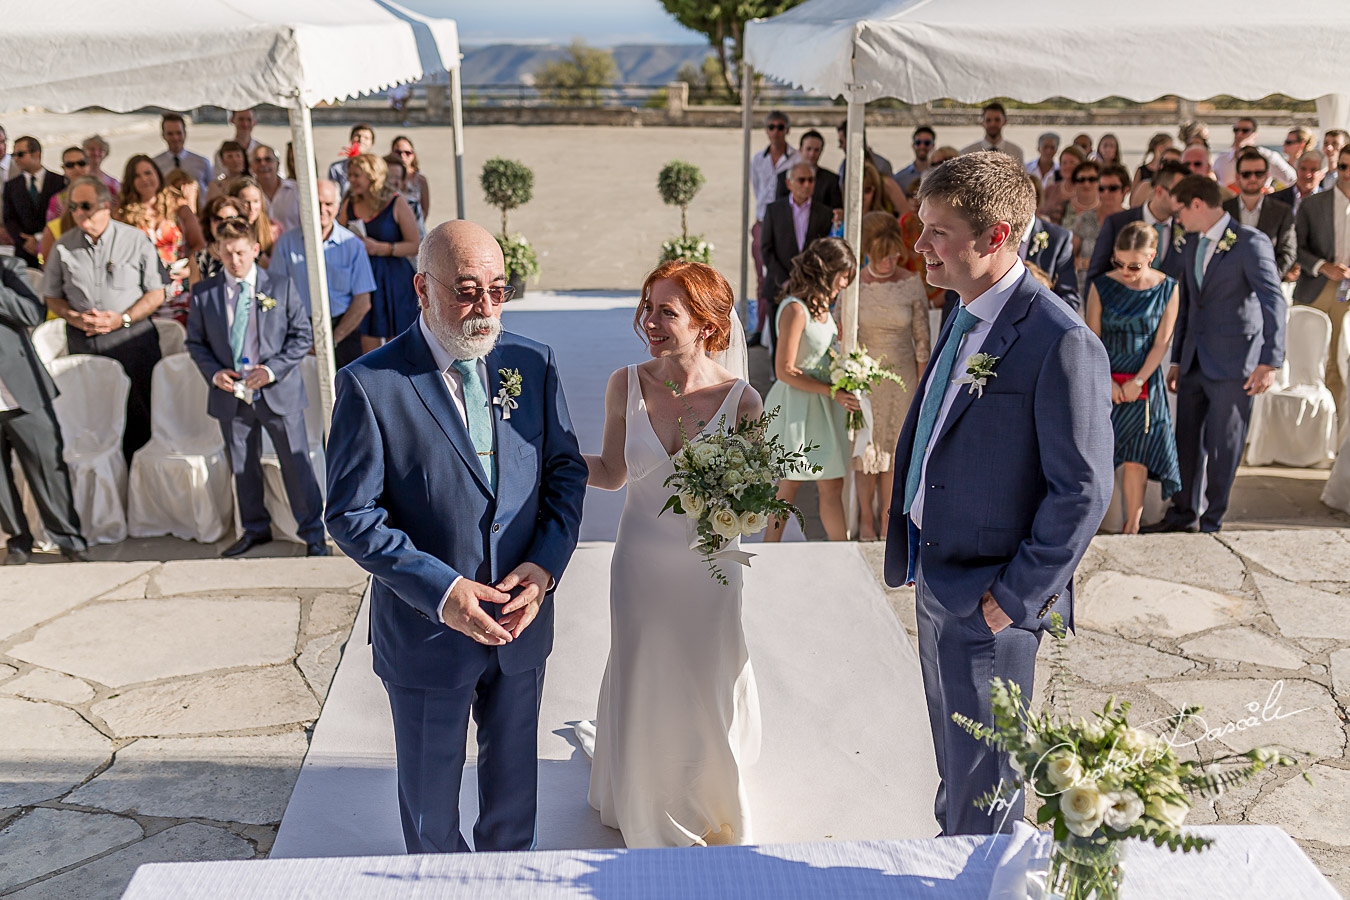 Wedding Celebration at Apokryfo - 41